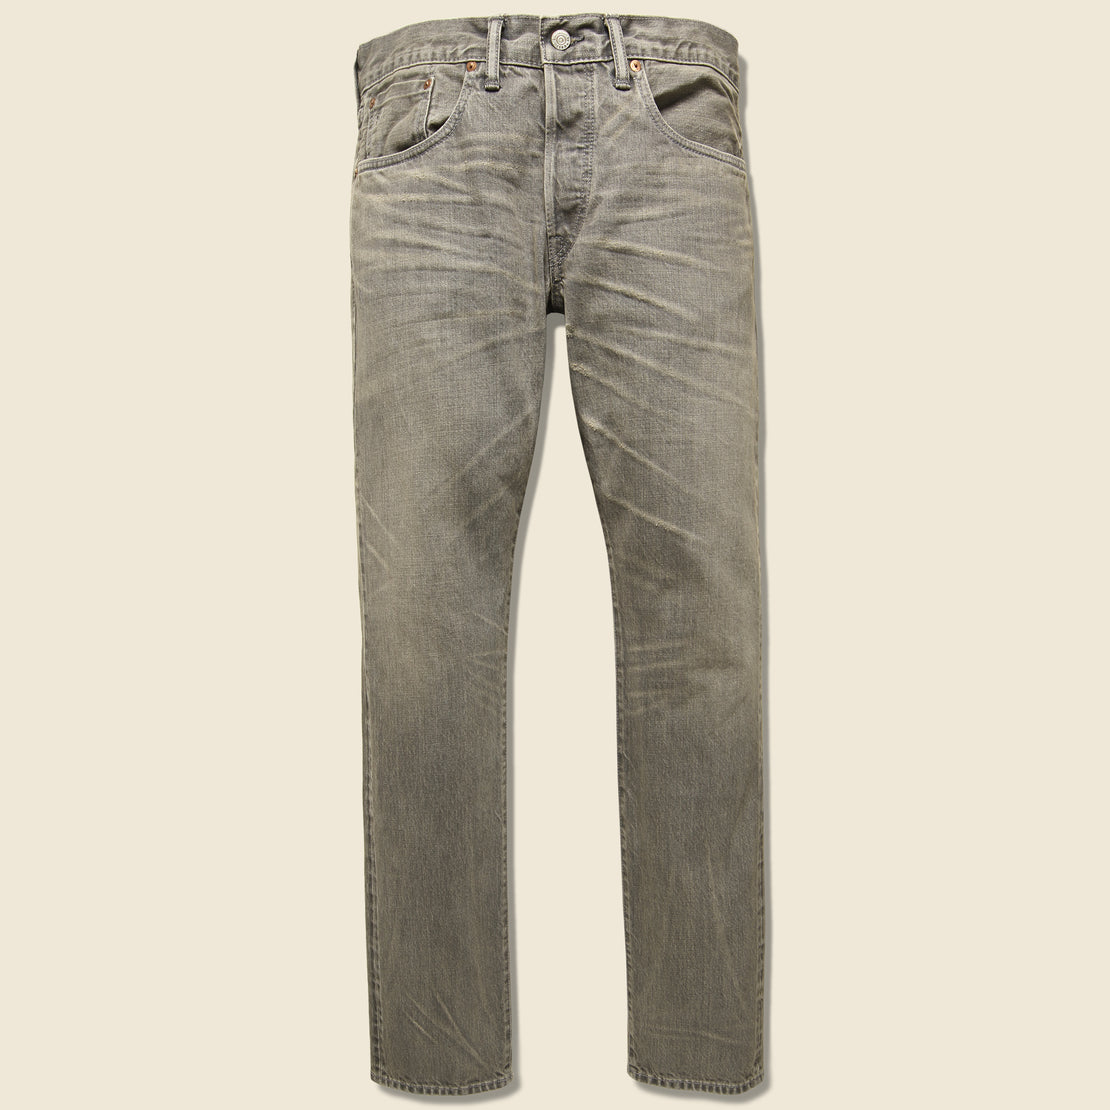 RRL Slim Fit Jean - Cloudy Grey Wash